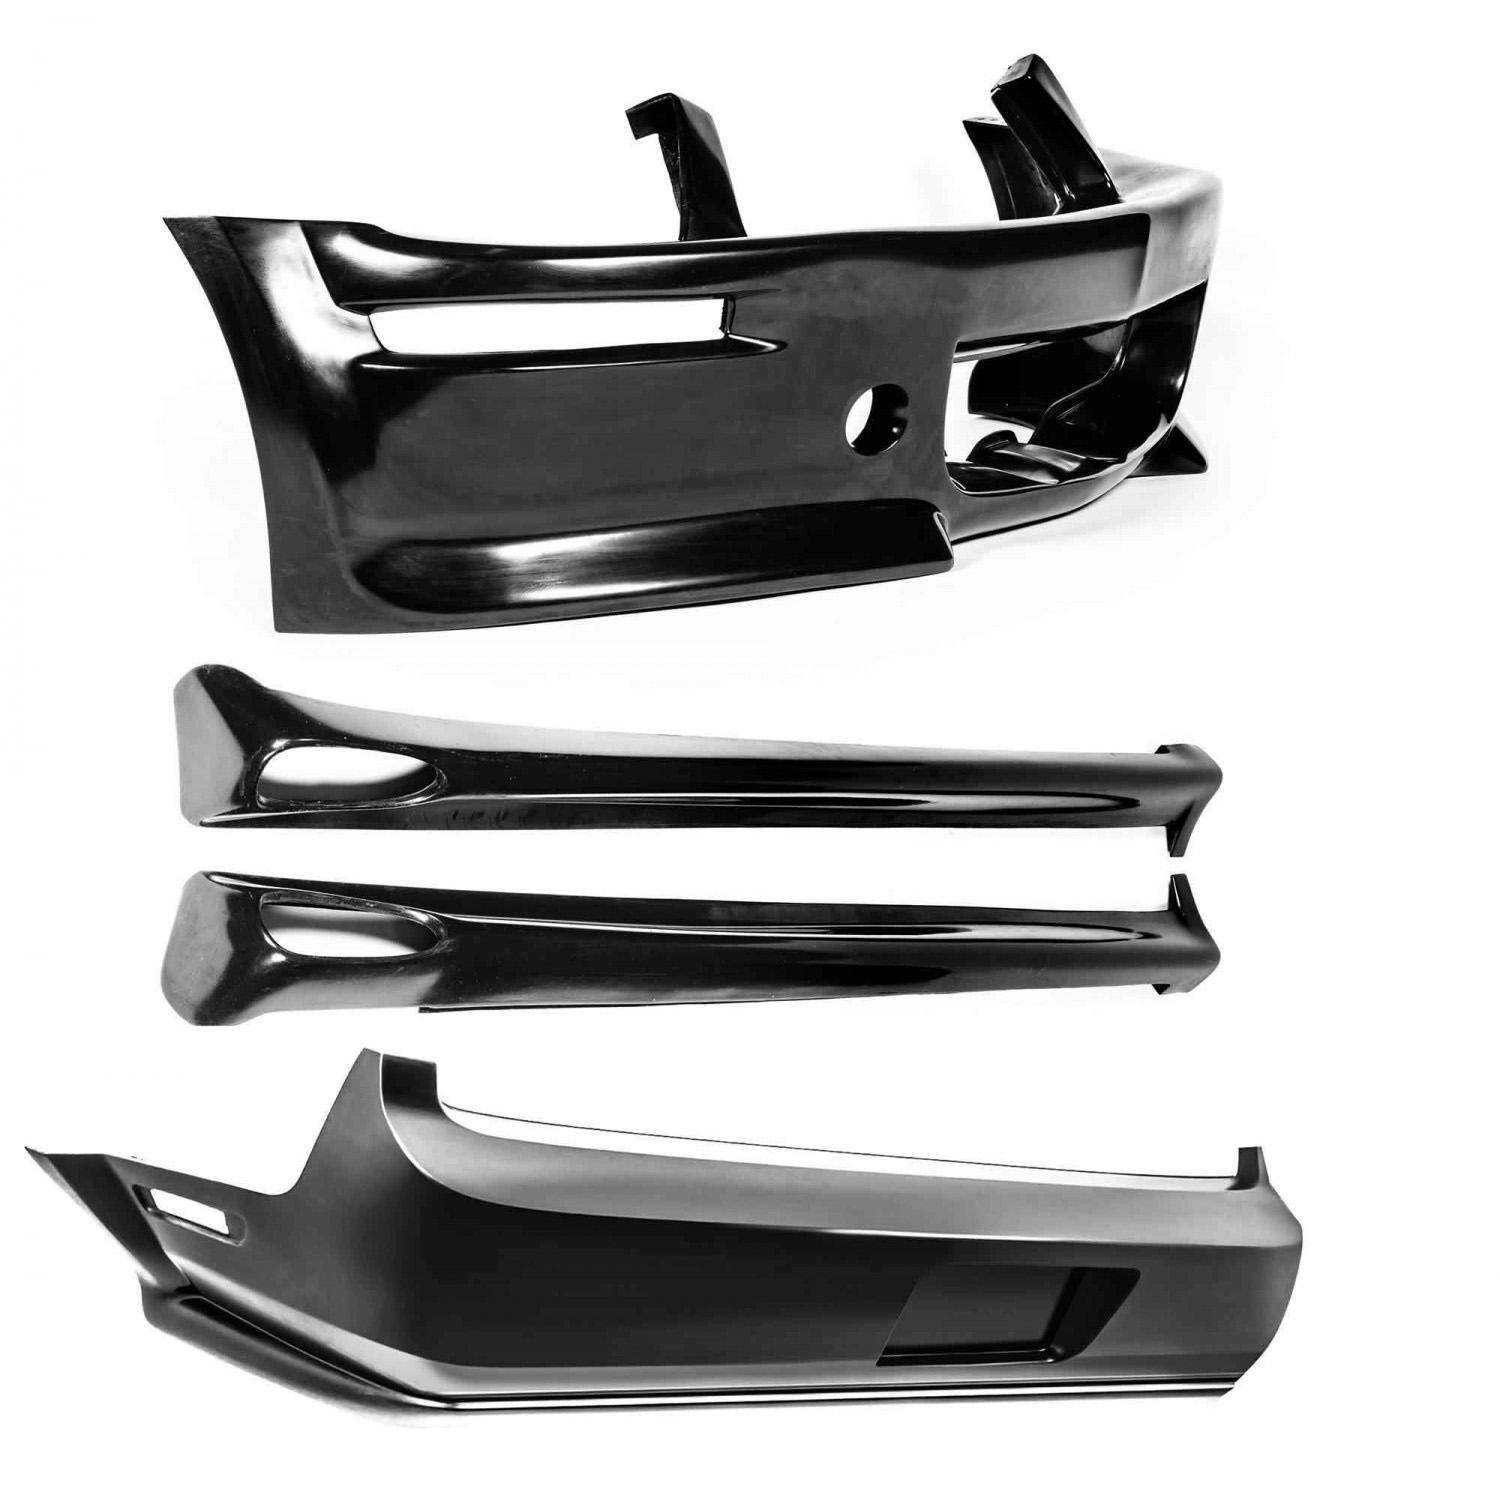 Ford Mustang 2005-2009 Eleanor Style 4 Piece Polyurethane Full Body Kit